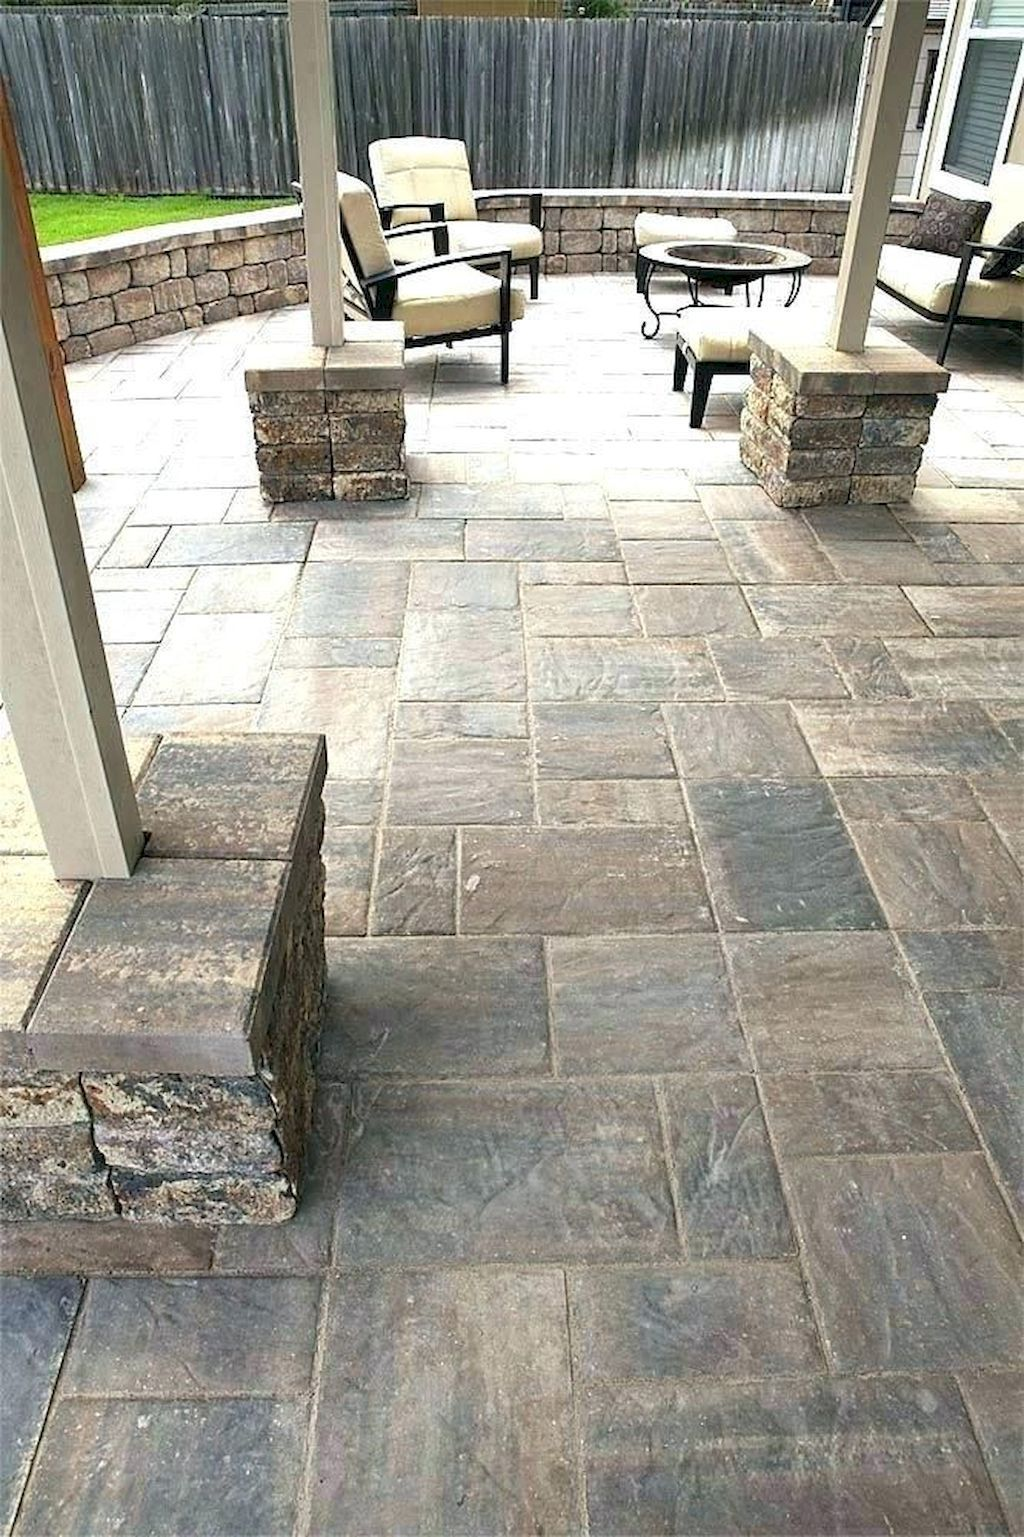 Stunning Backyard Patio And Deck Design Ideas 30 Homeideas Co Patio Tiles Outdoor Patio Decor Patio Pavers Design